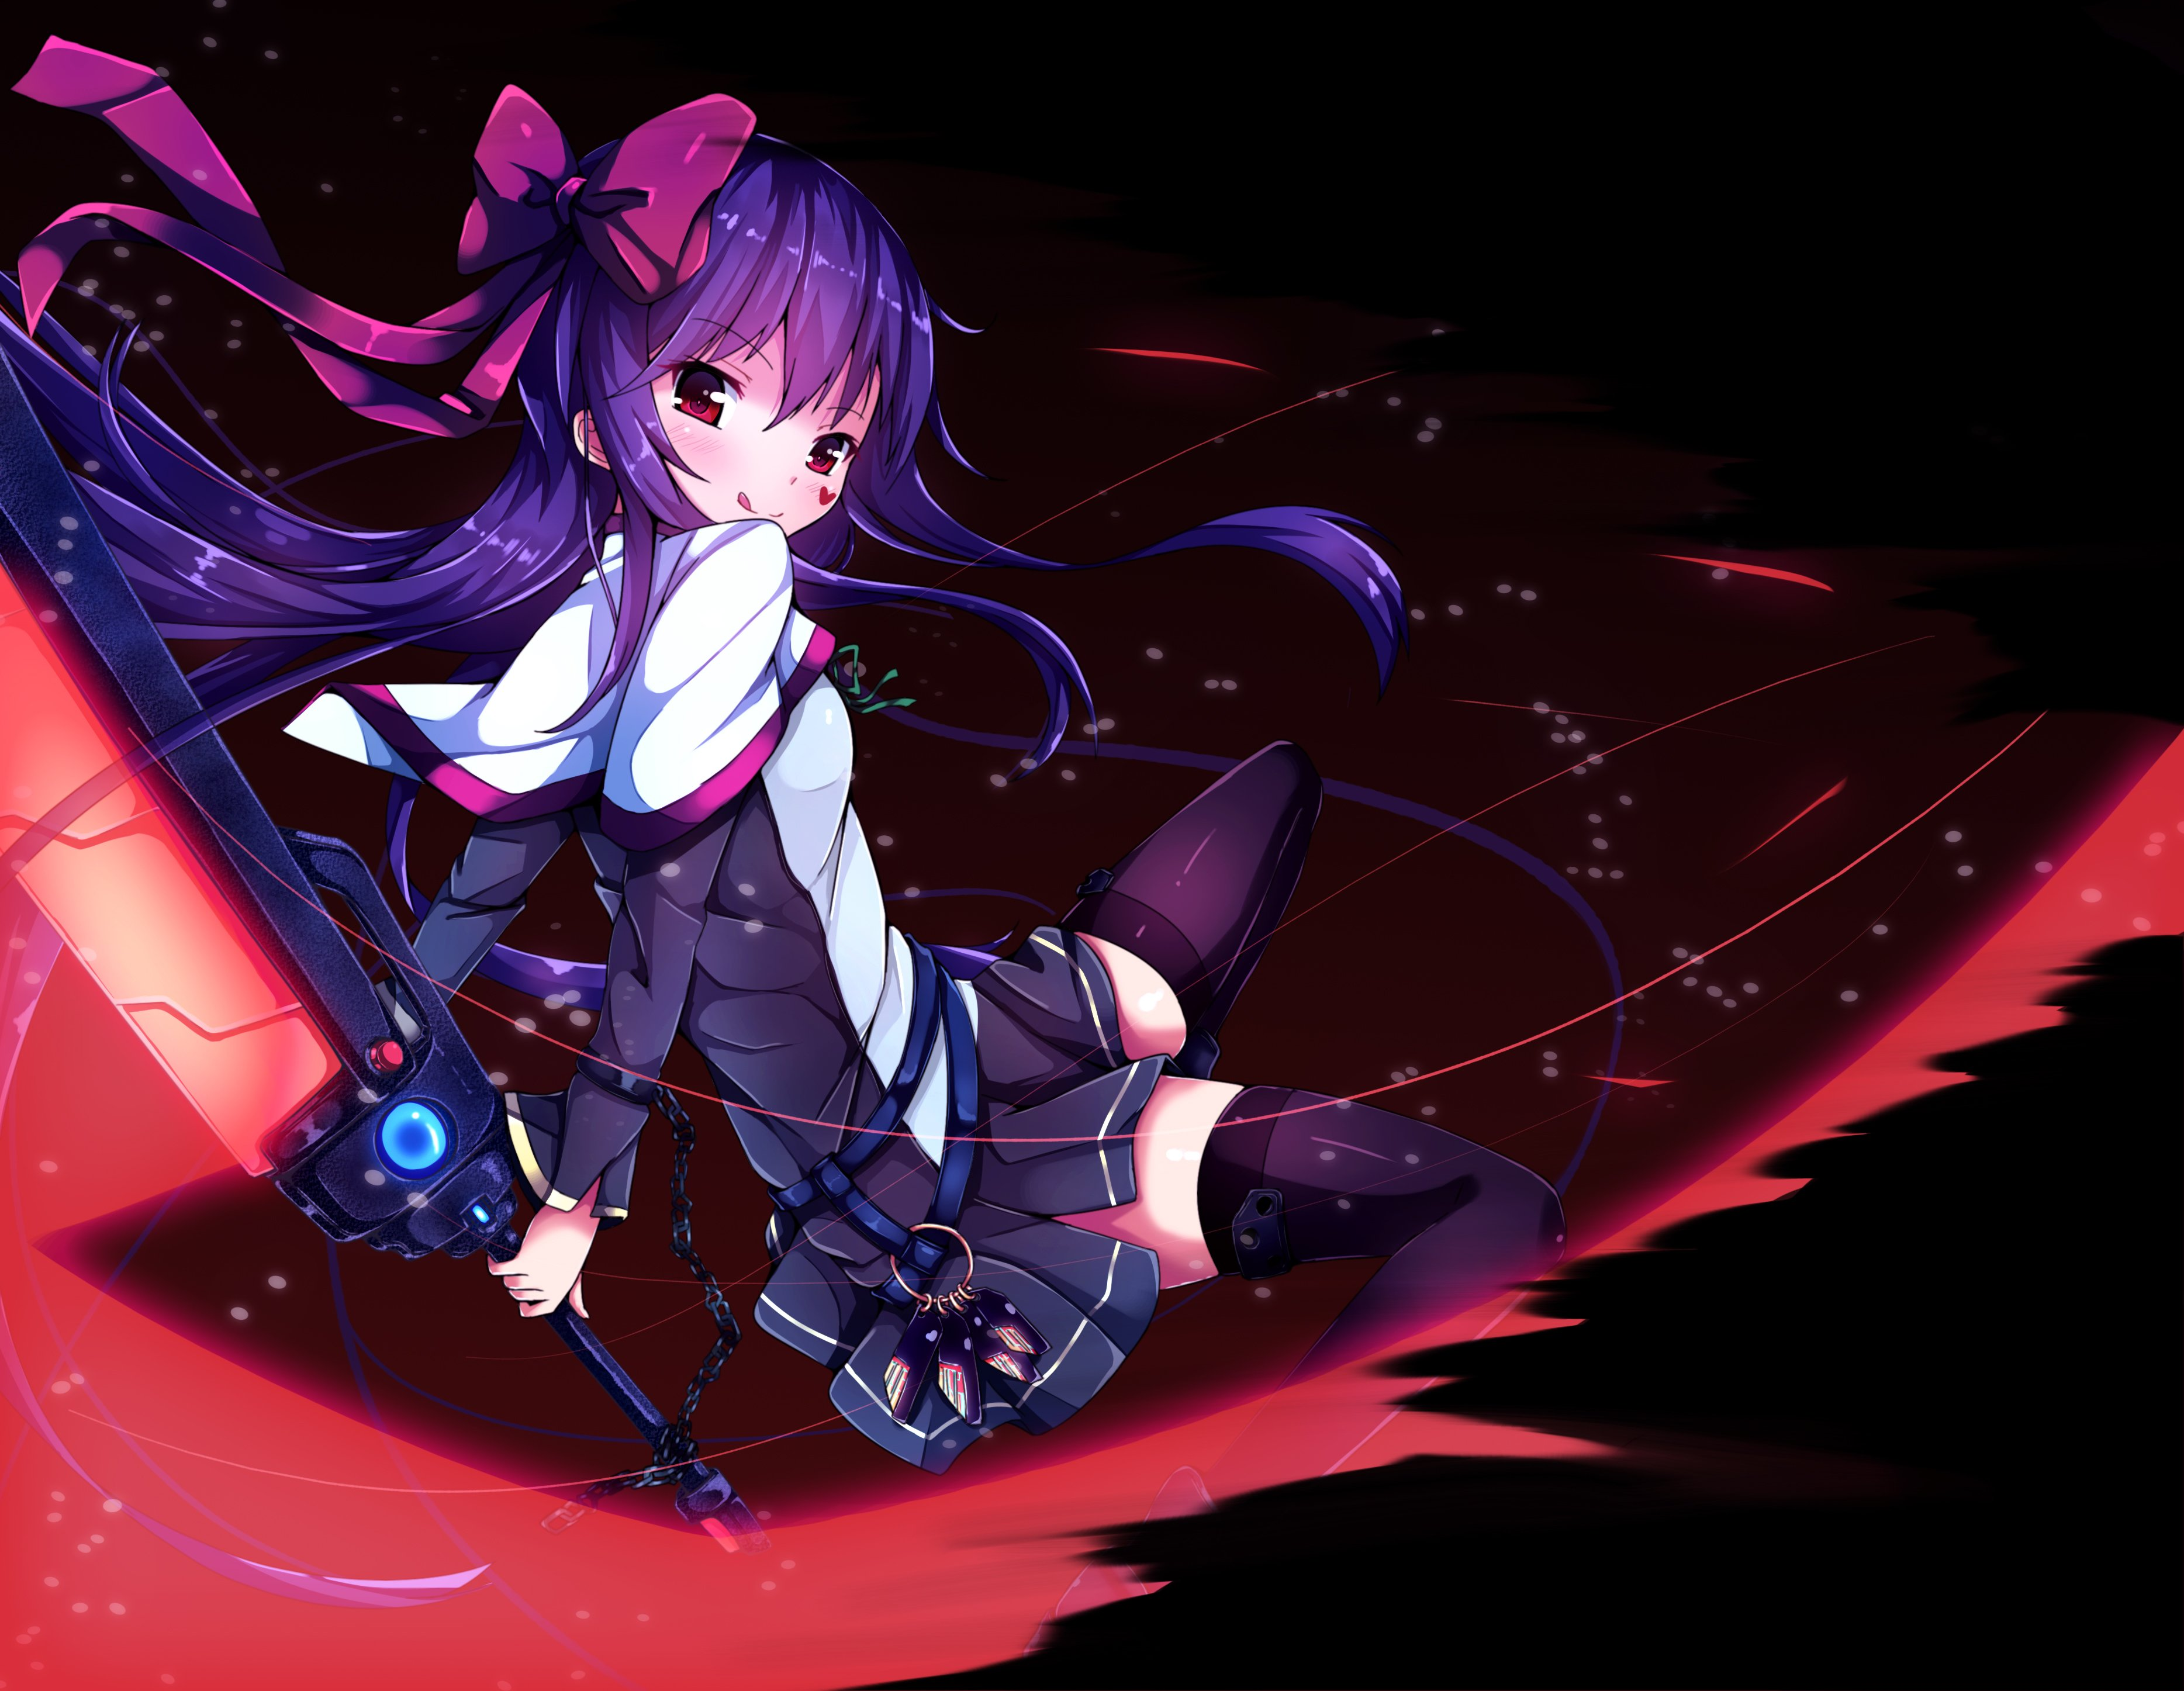 Red Hair Anime Girl With Sword: Bow Erimu Long Hair Original Purple Hair Red Eyes Skirt